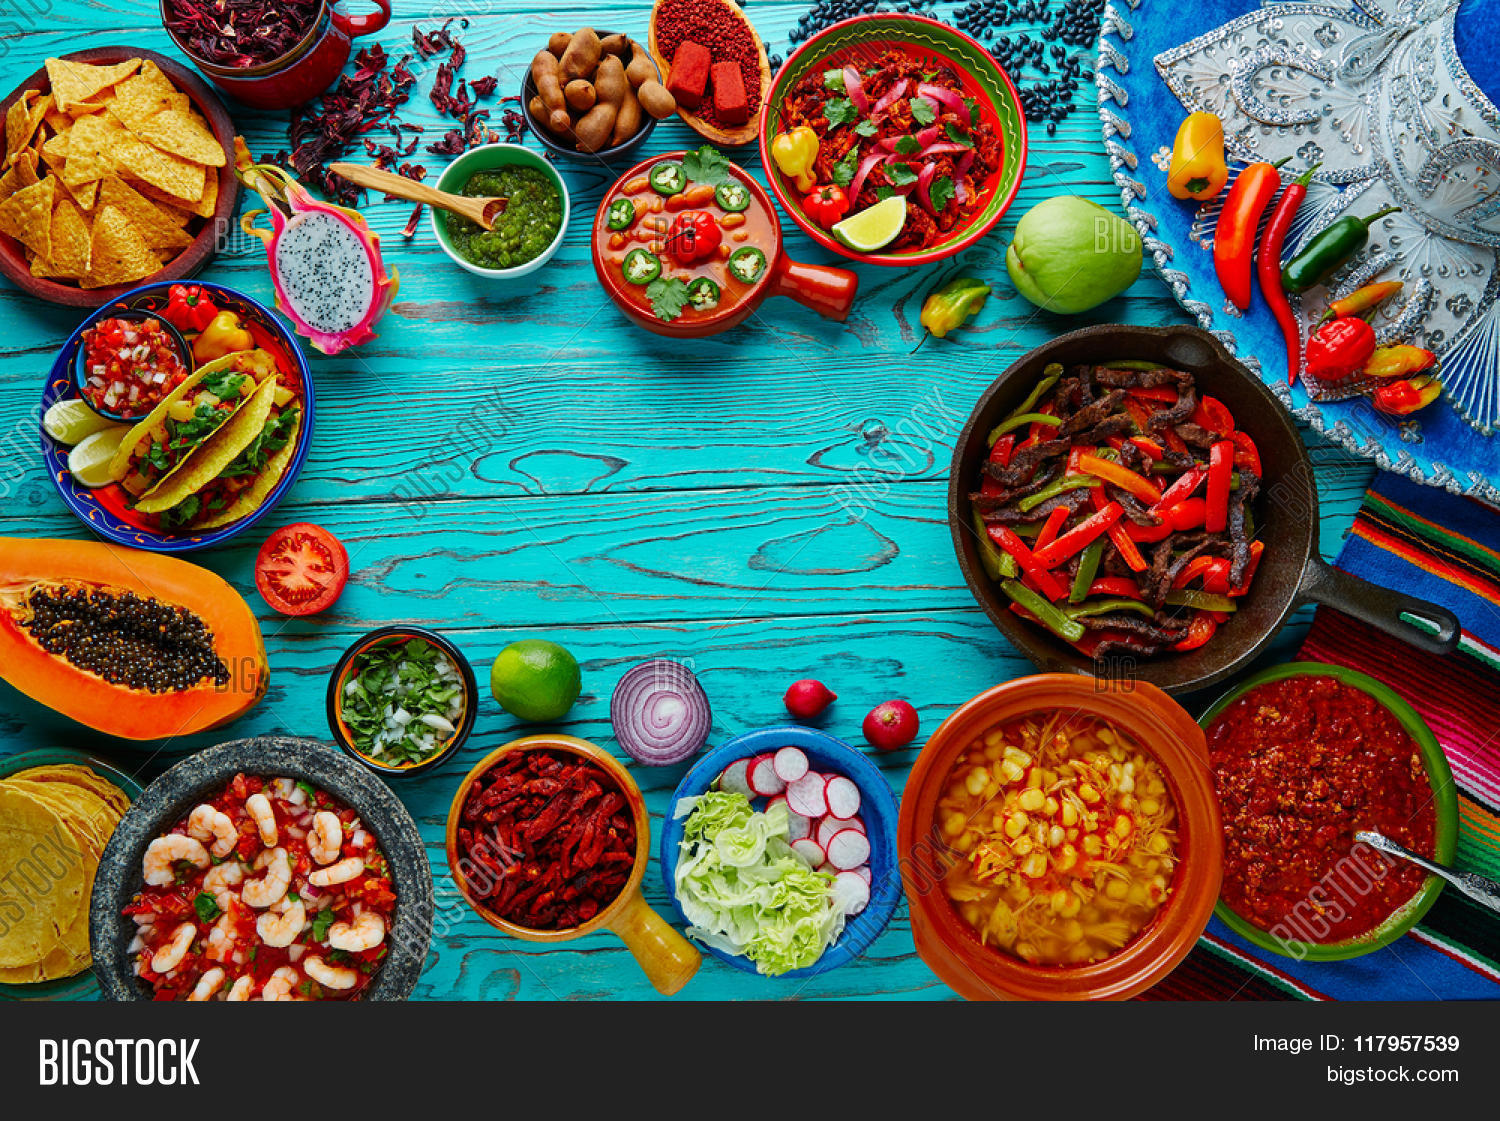 Mexican Food Mix Image Photo Trial Bigstock 1500x1121